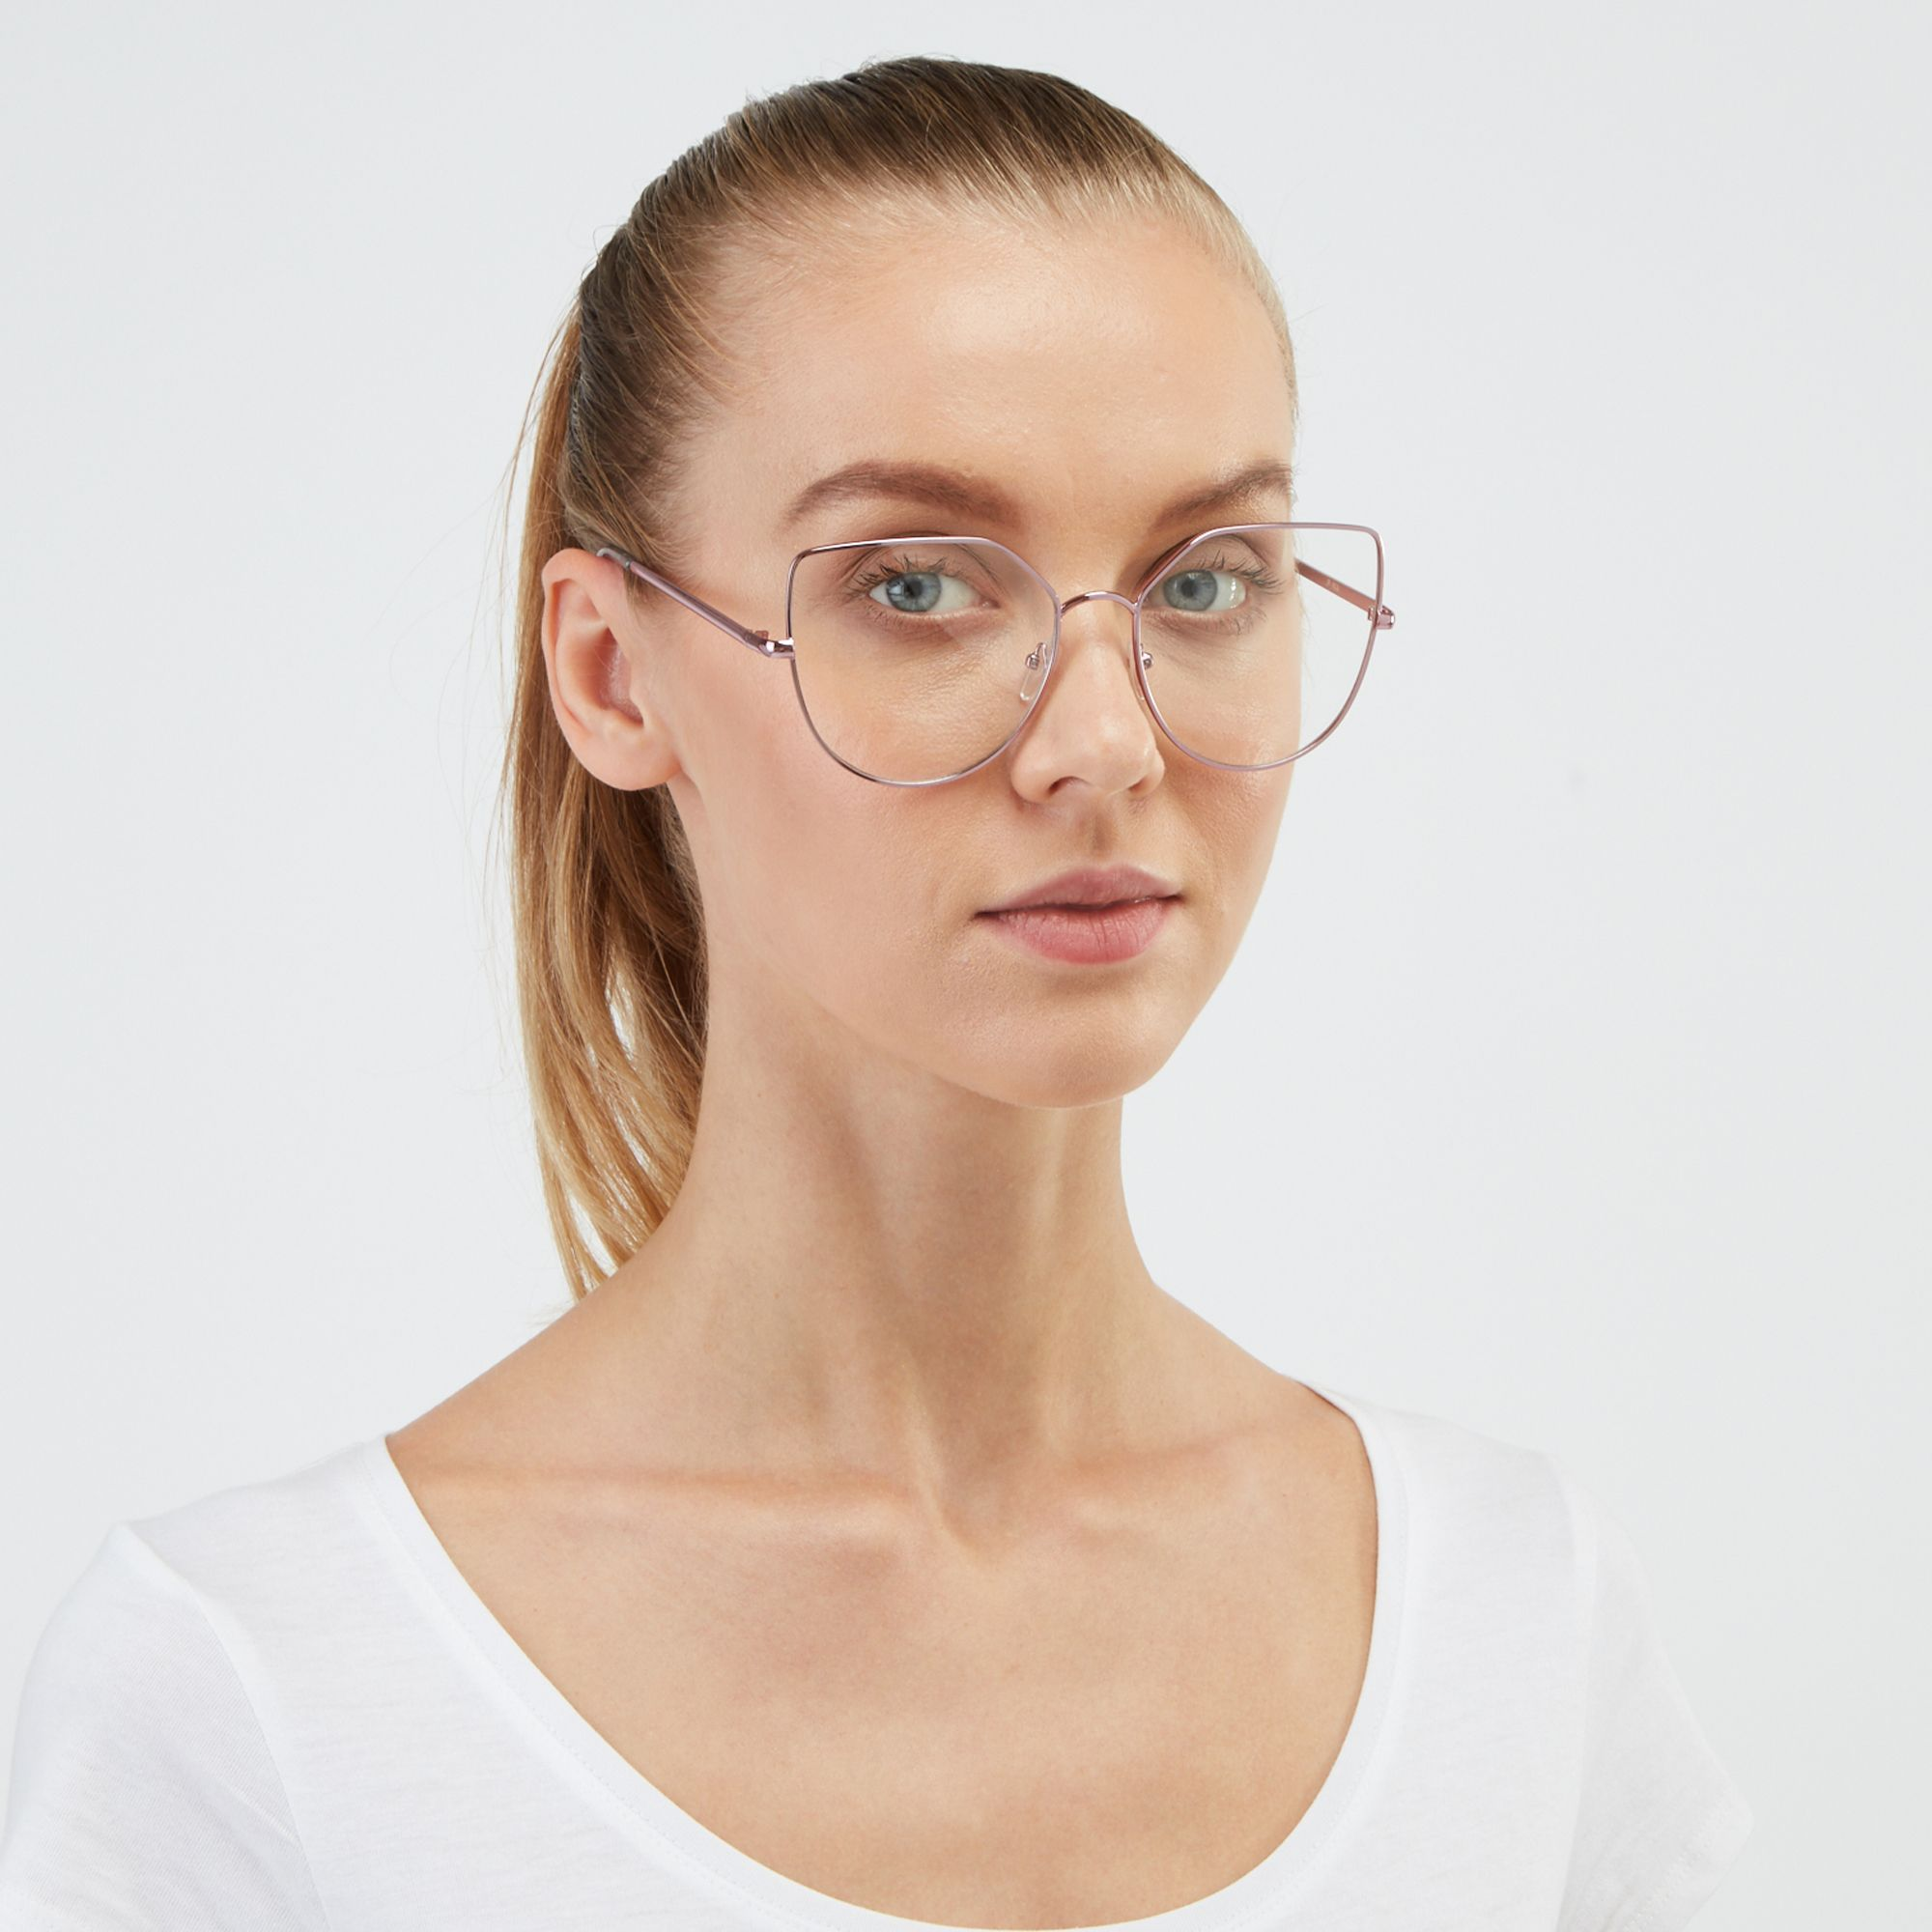 c8f727d4136 Jeepers Peepers Cat Eye Glasses - Pink